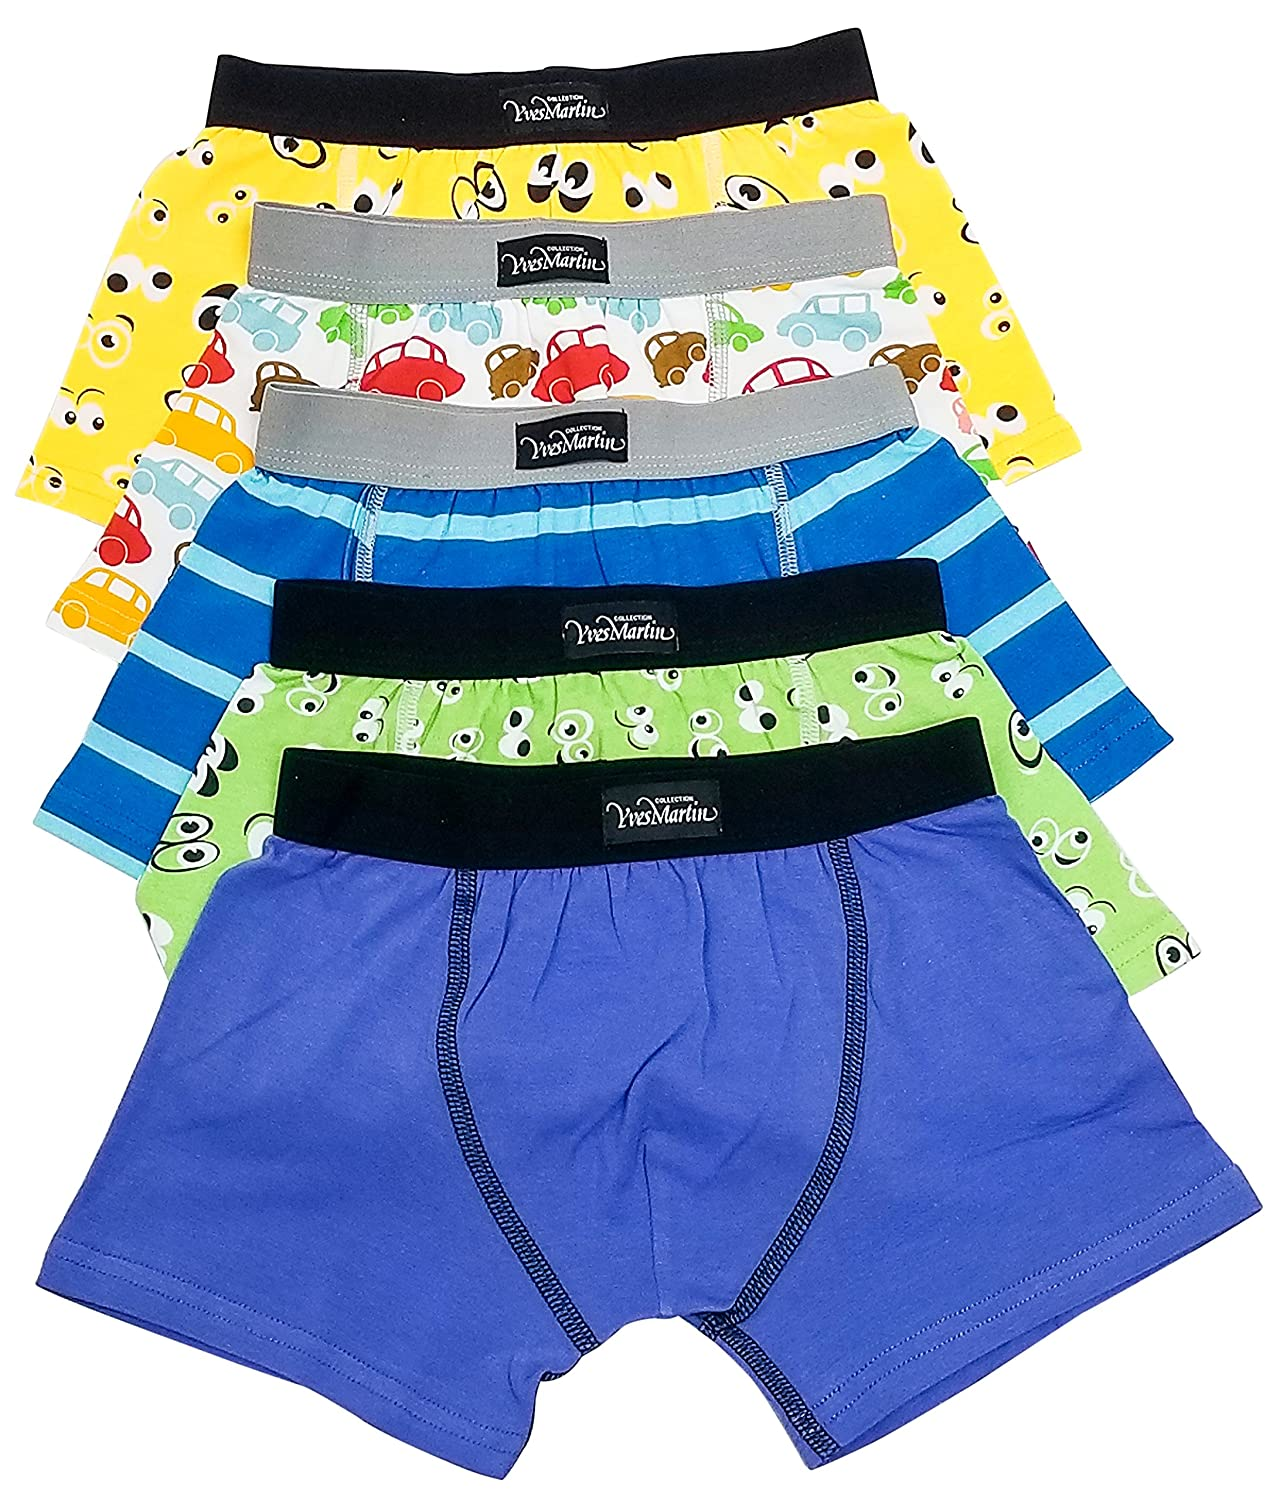 COLLECTION YVES MARTIN | Little Boys' Boxer Briefs (kids) - Fun Pack (4567/5) Yves Martin Underwear Inc.